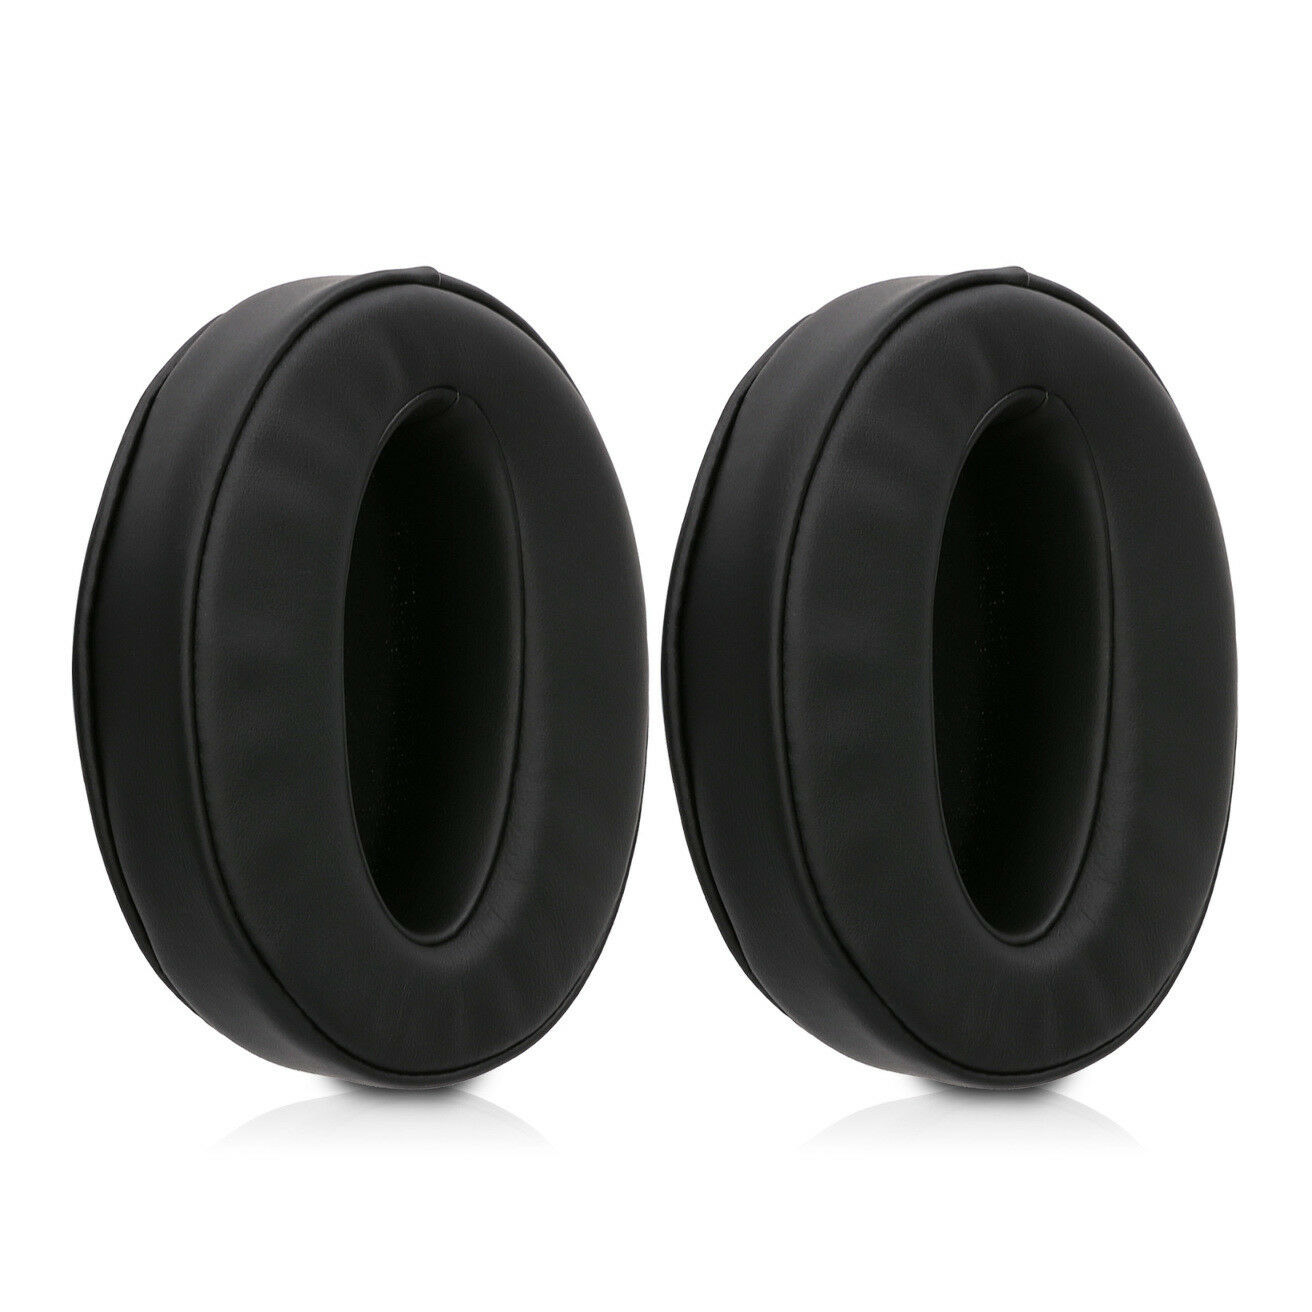 HD 4.50 BTNC EARPADS